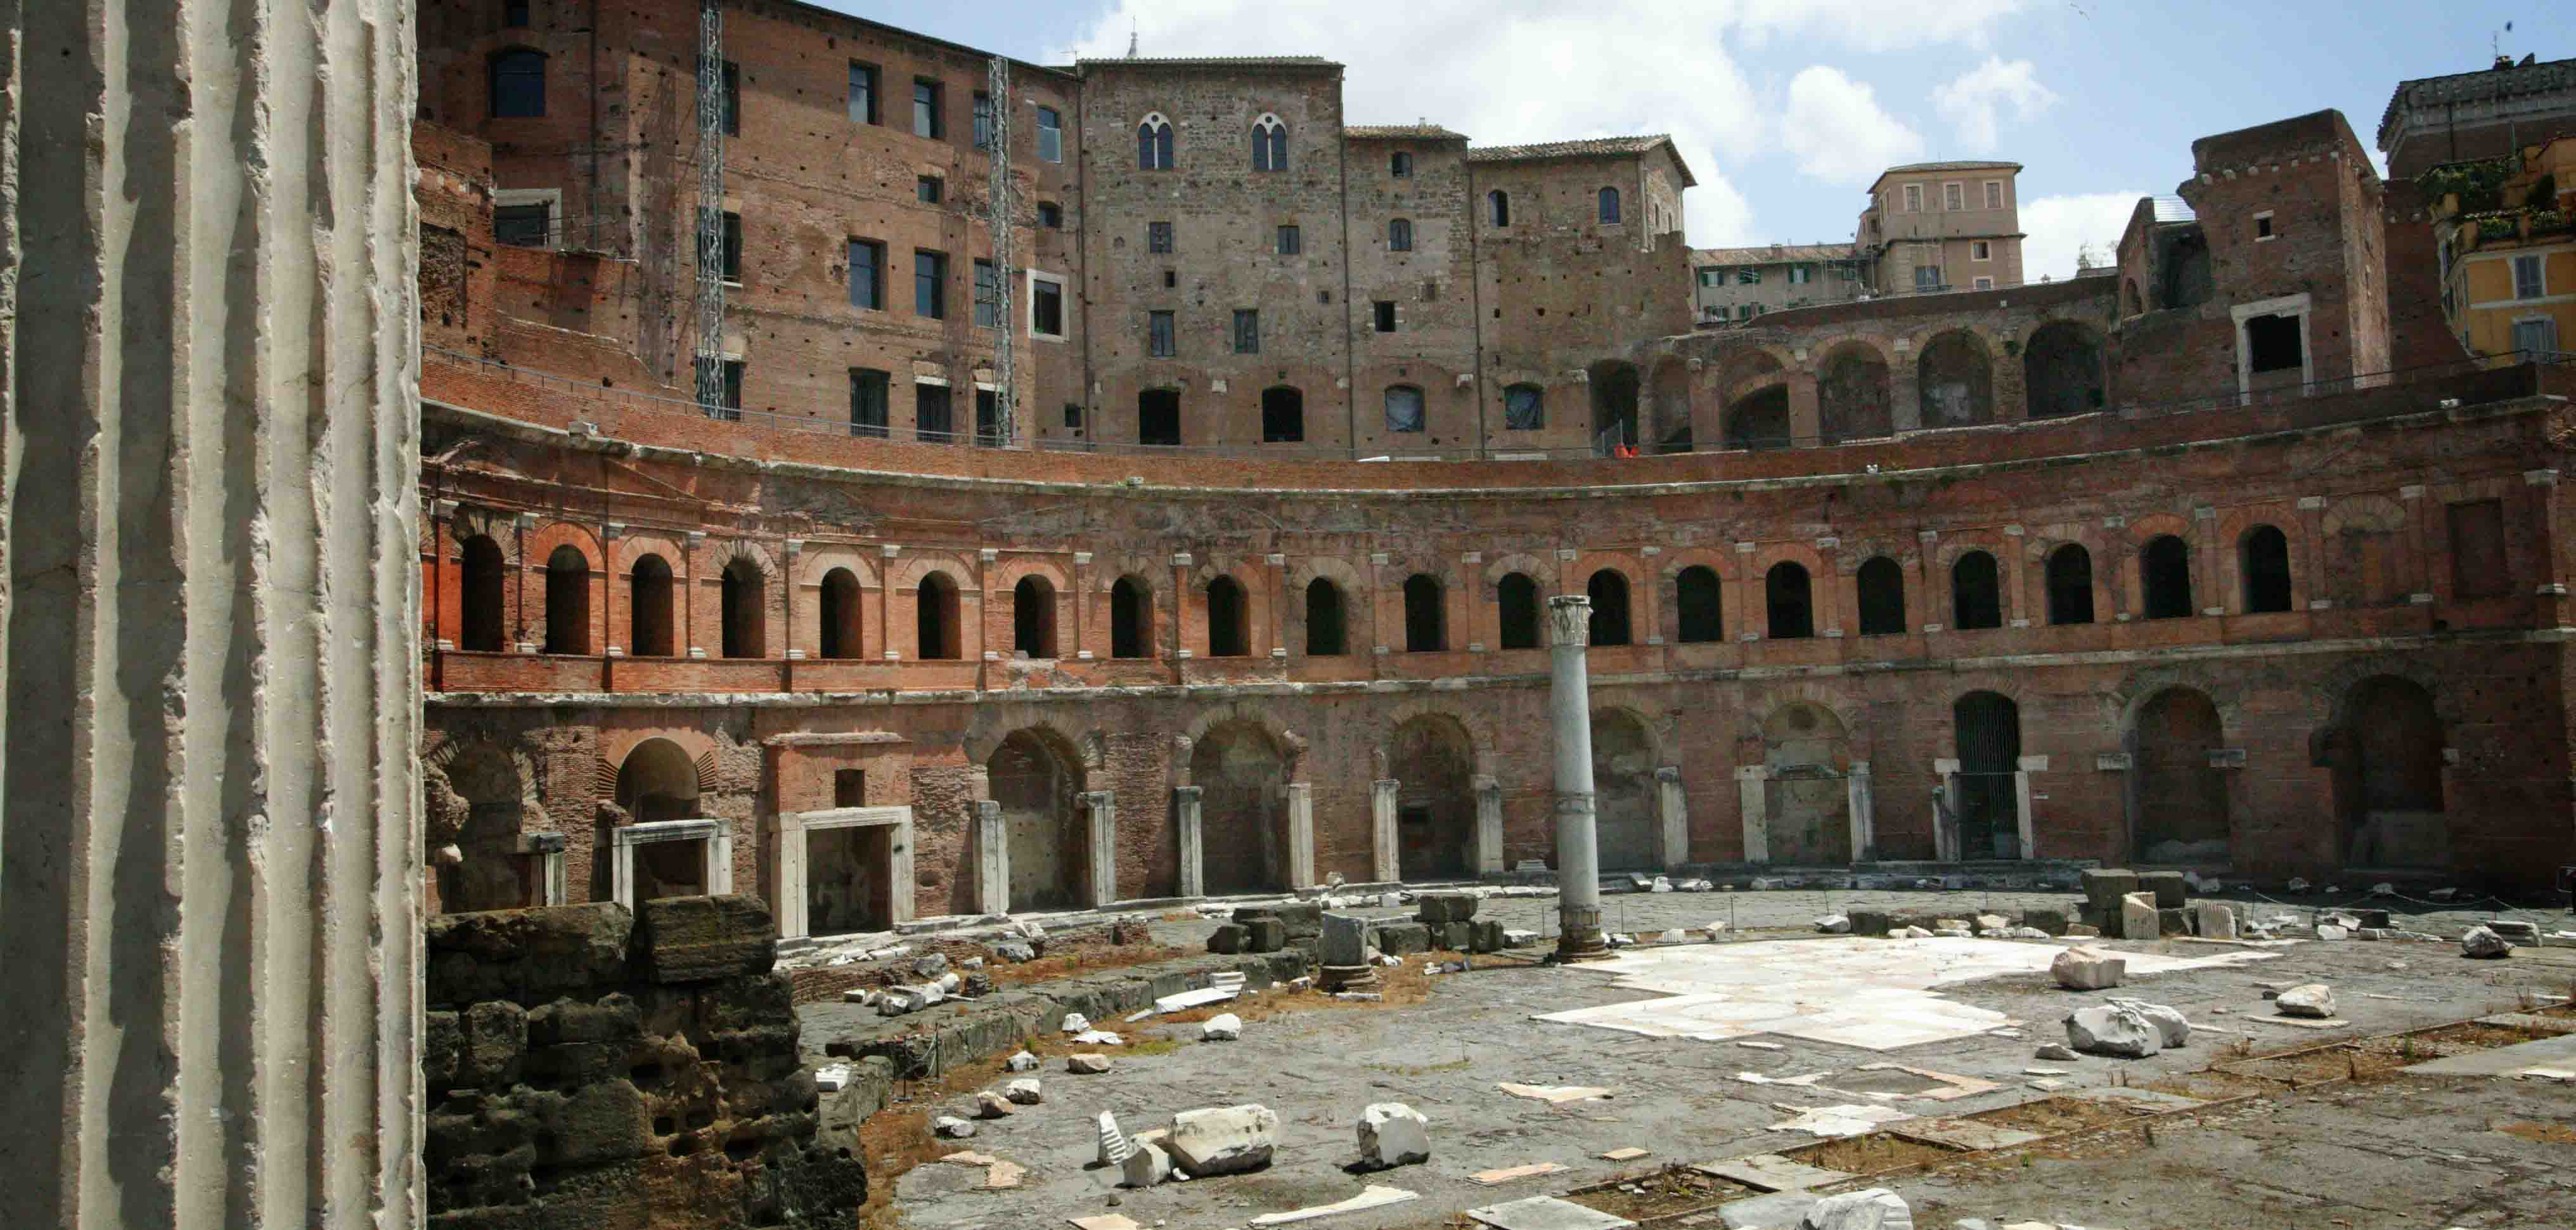 a research on the historical golden house of nero Nero's golden house ★ the domus aurea—nero's personal pleasure palace across from the colosseum—offers a rare glimpse into the privileged world of a roman emperor statue in nero's golden house.